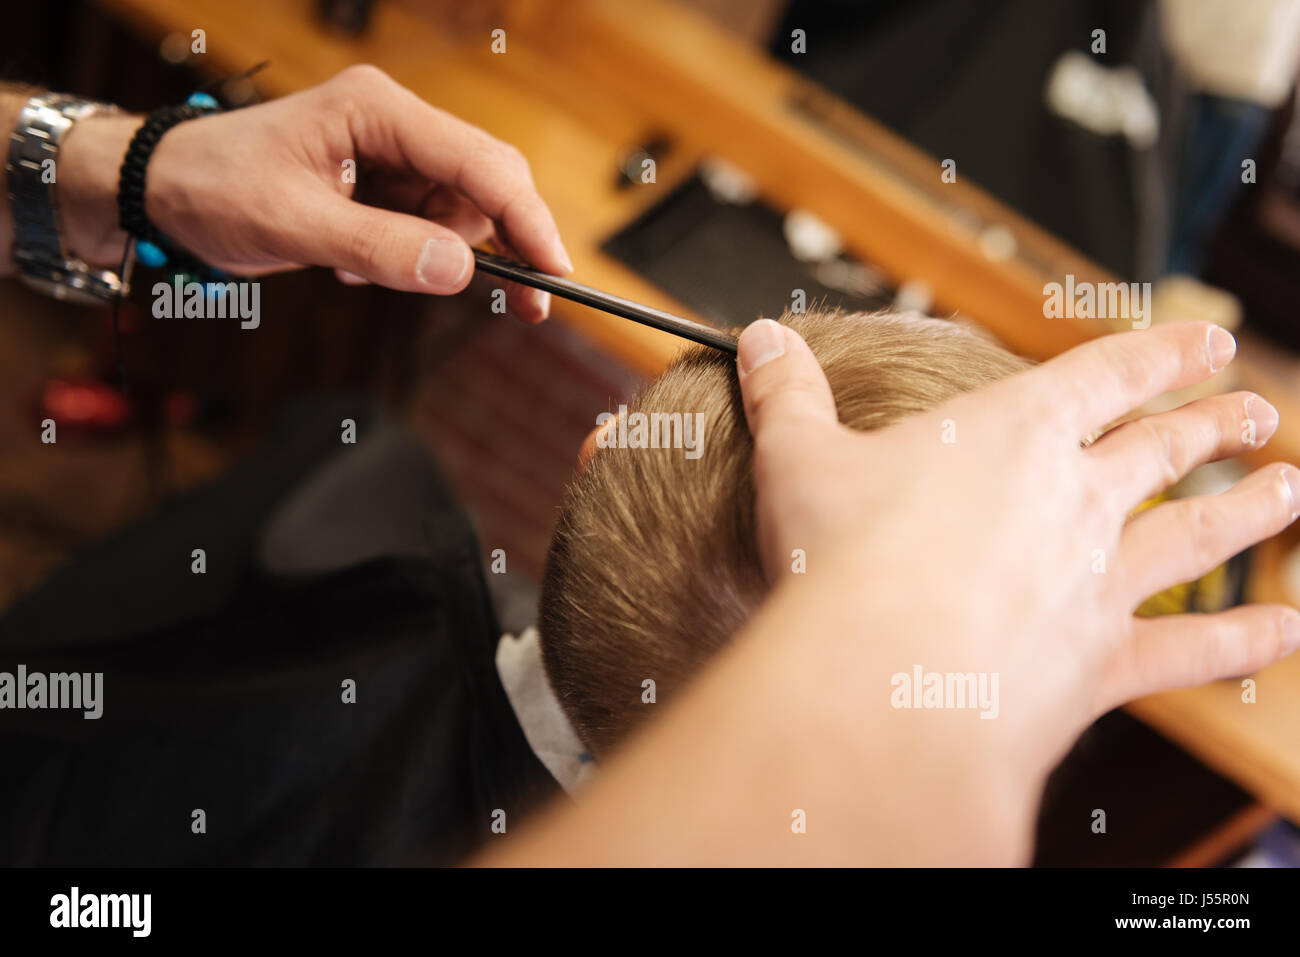 Comb being used by a professional barber - Stock Image